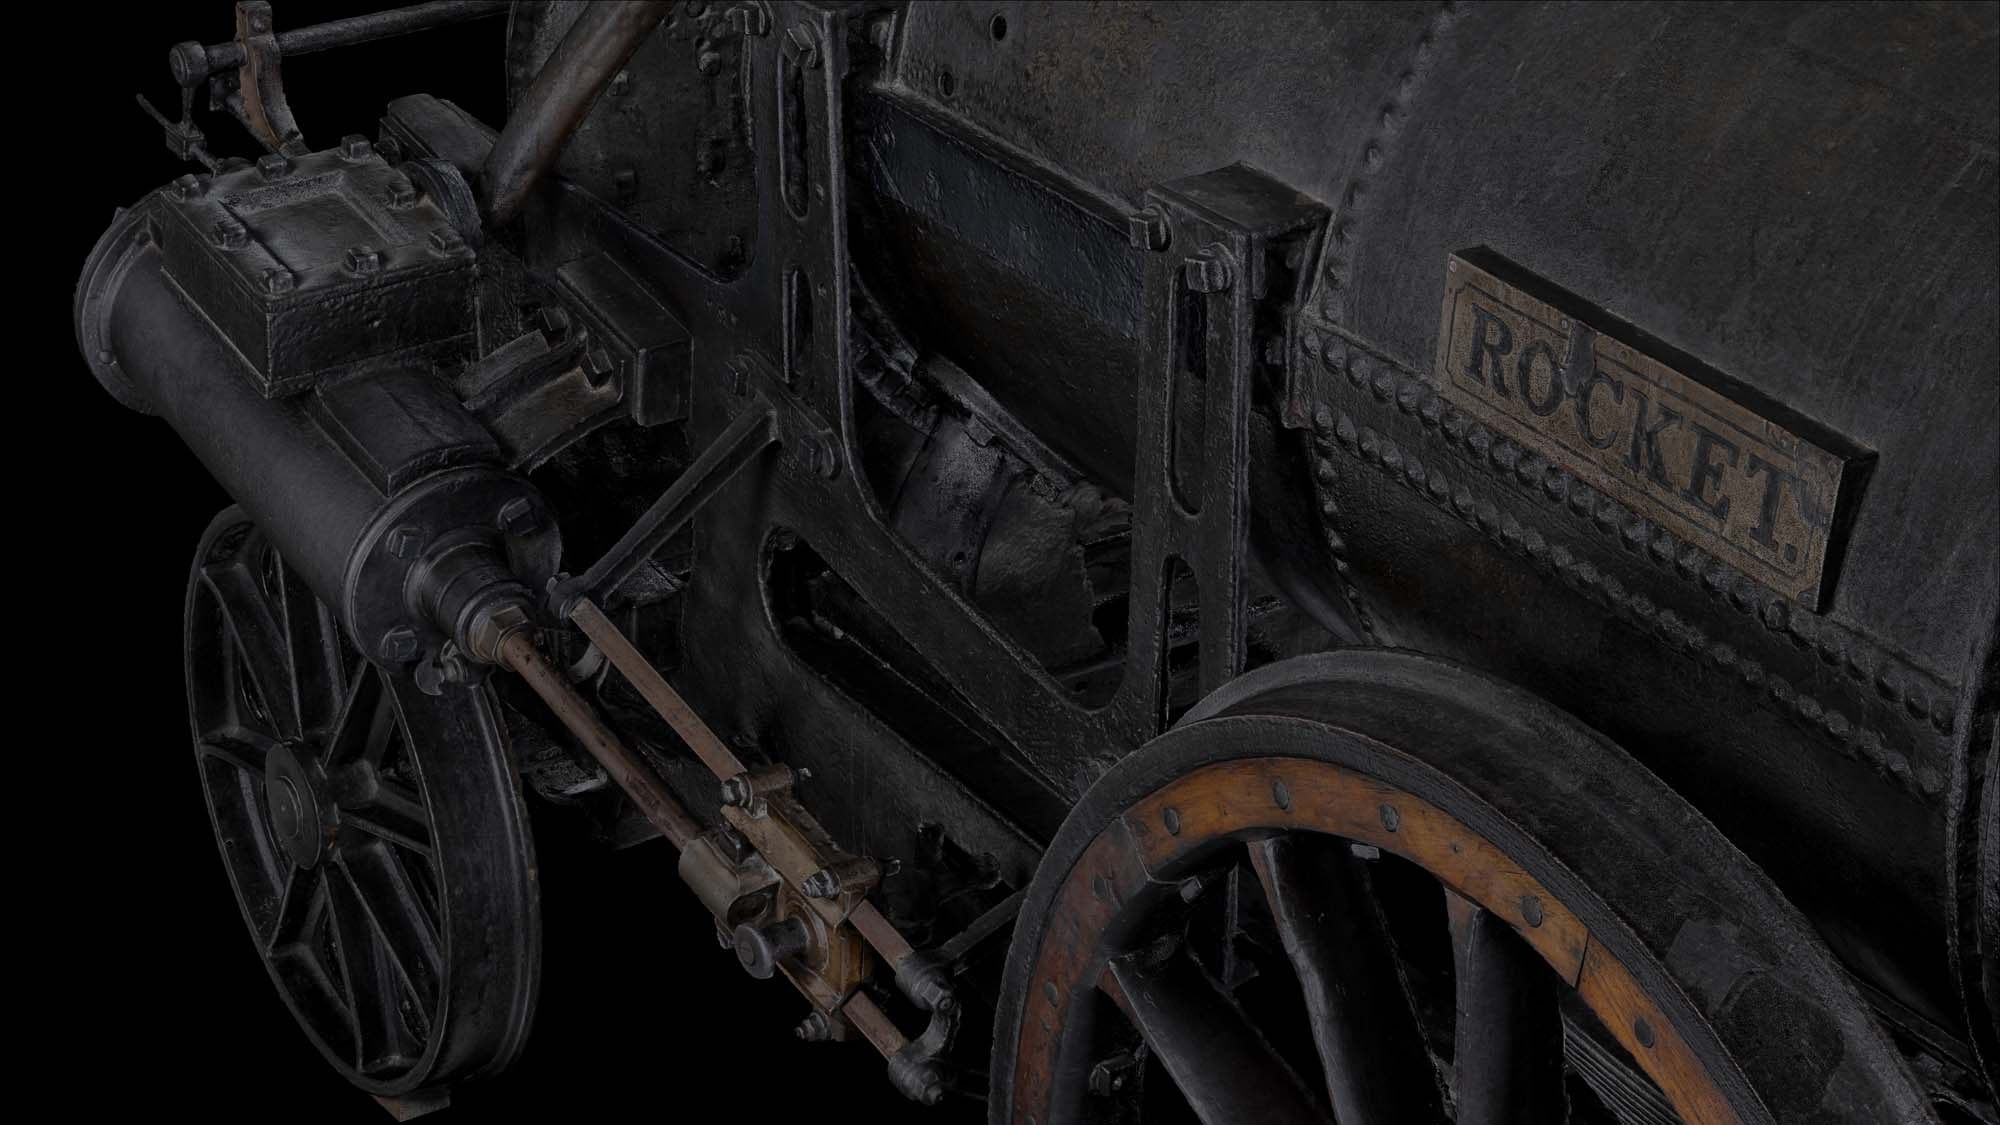 a detail of a 3D reconstruction of Stephenson's Rocket showing the Rocket nameplate